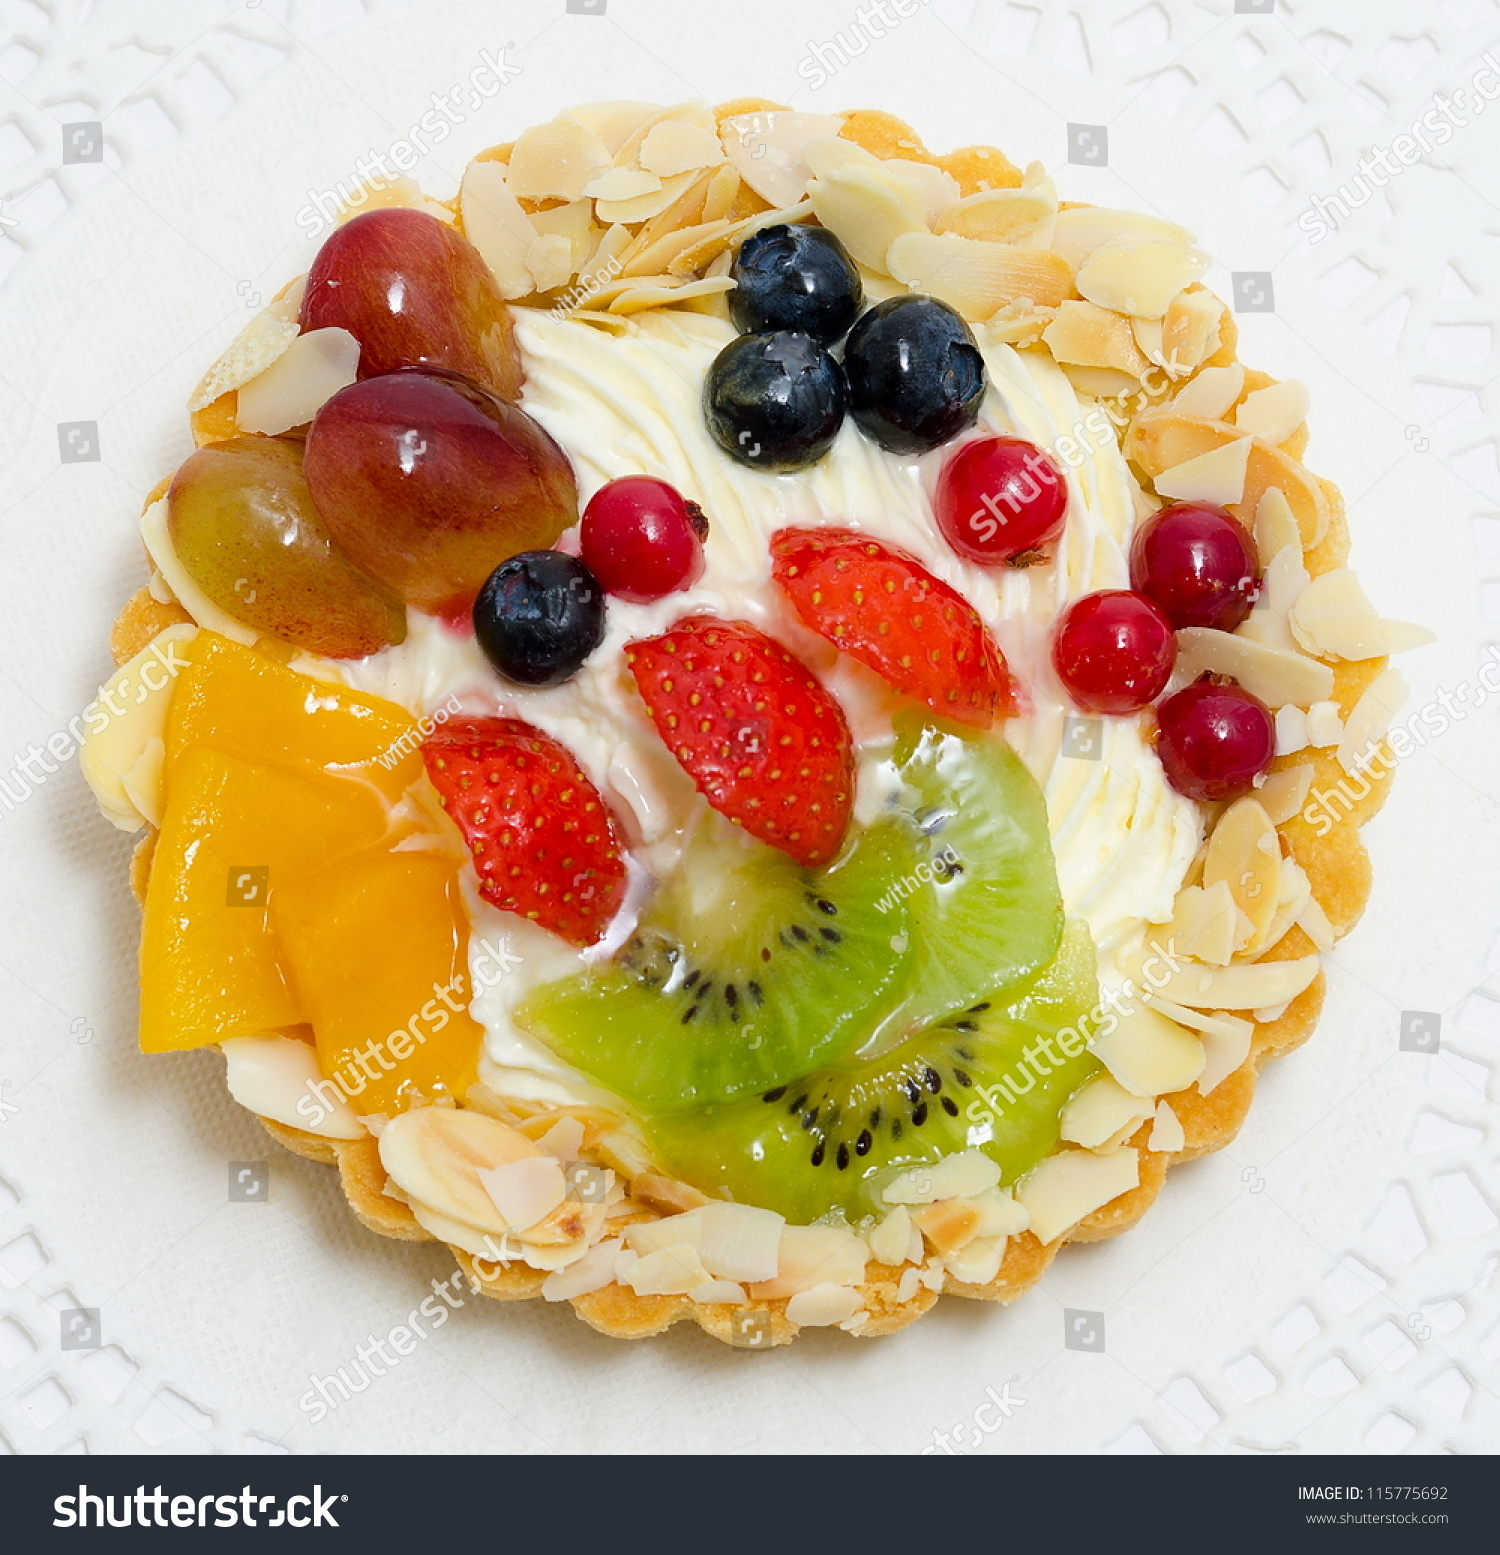 A Fresh Fruit And Berry Cake - A Top View Stock Photo ...